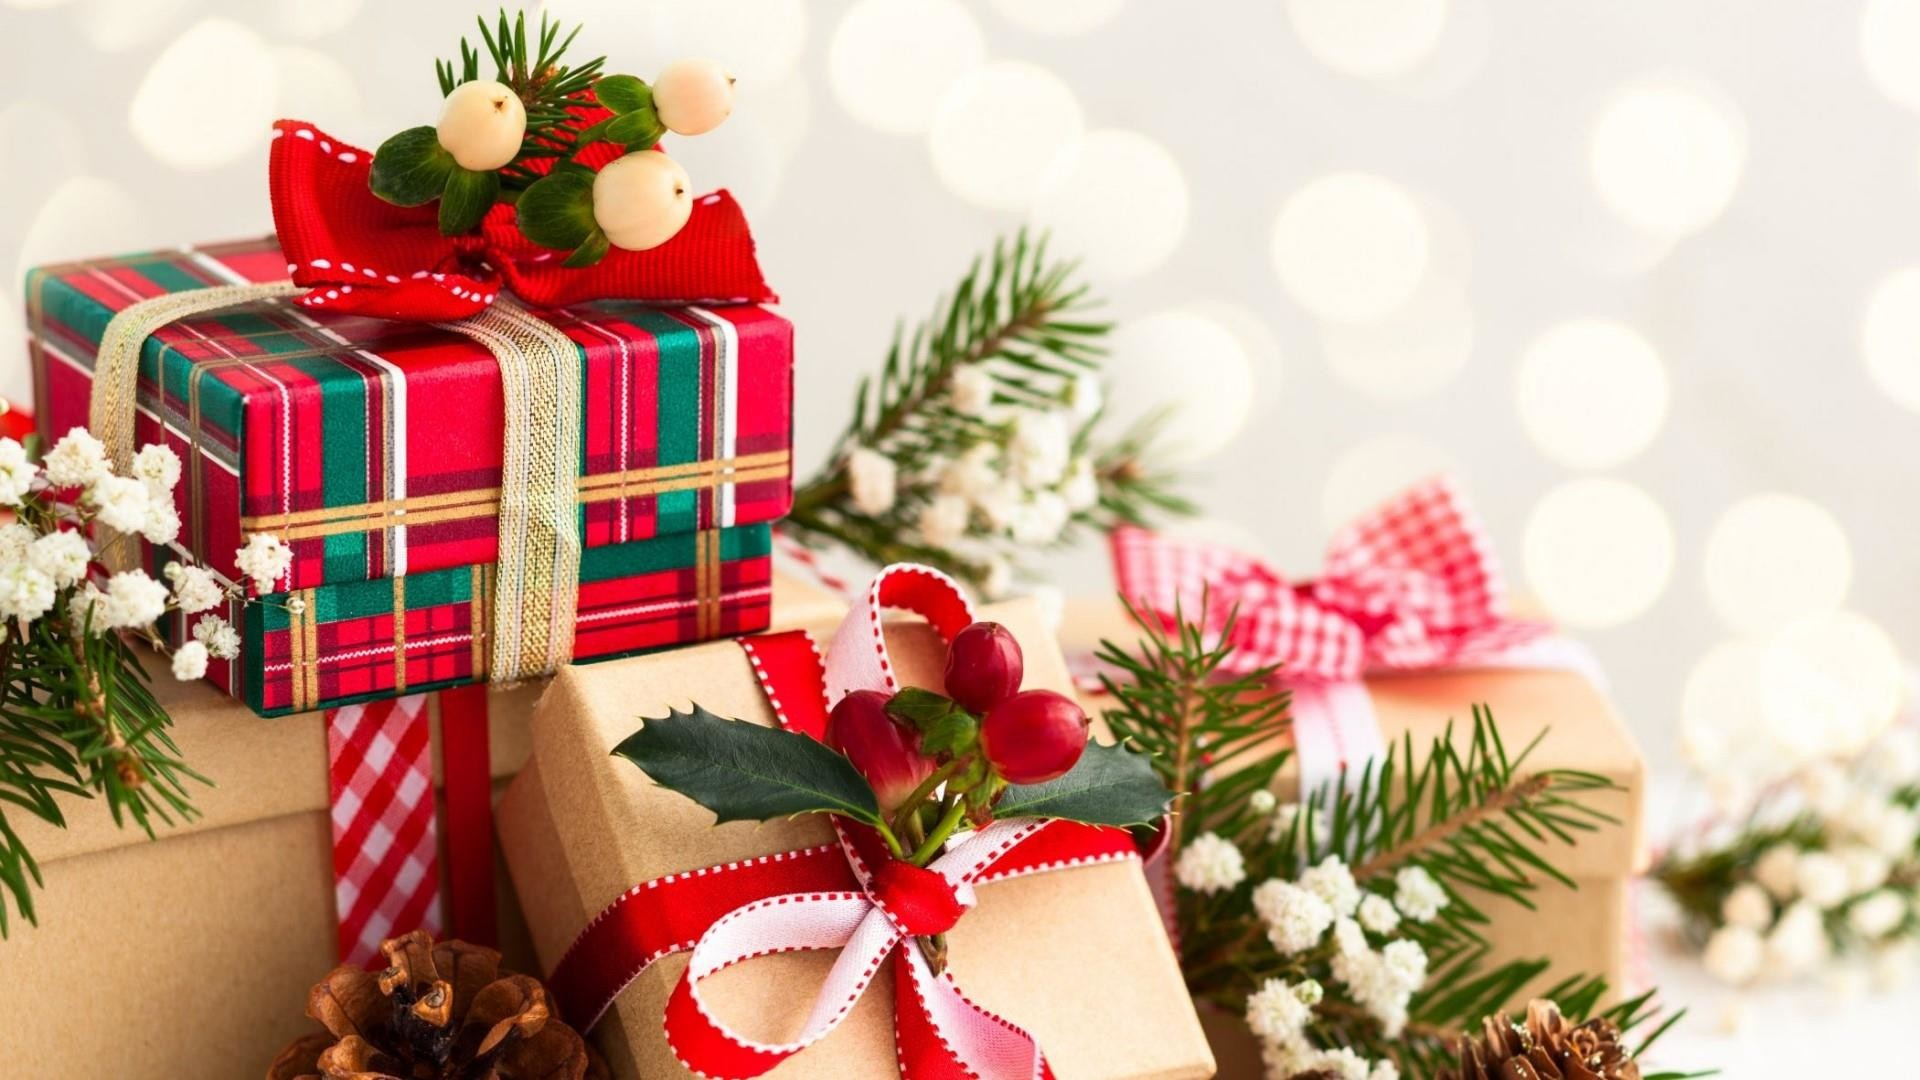 Res: 1920x1080, Christmas Presents Wallpaper   Wallpaper Studio 10   Tens of thousands HD  and UltraHD wallpapers for Android, Windows and Xbox